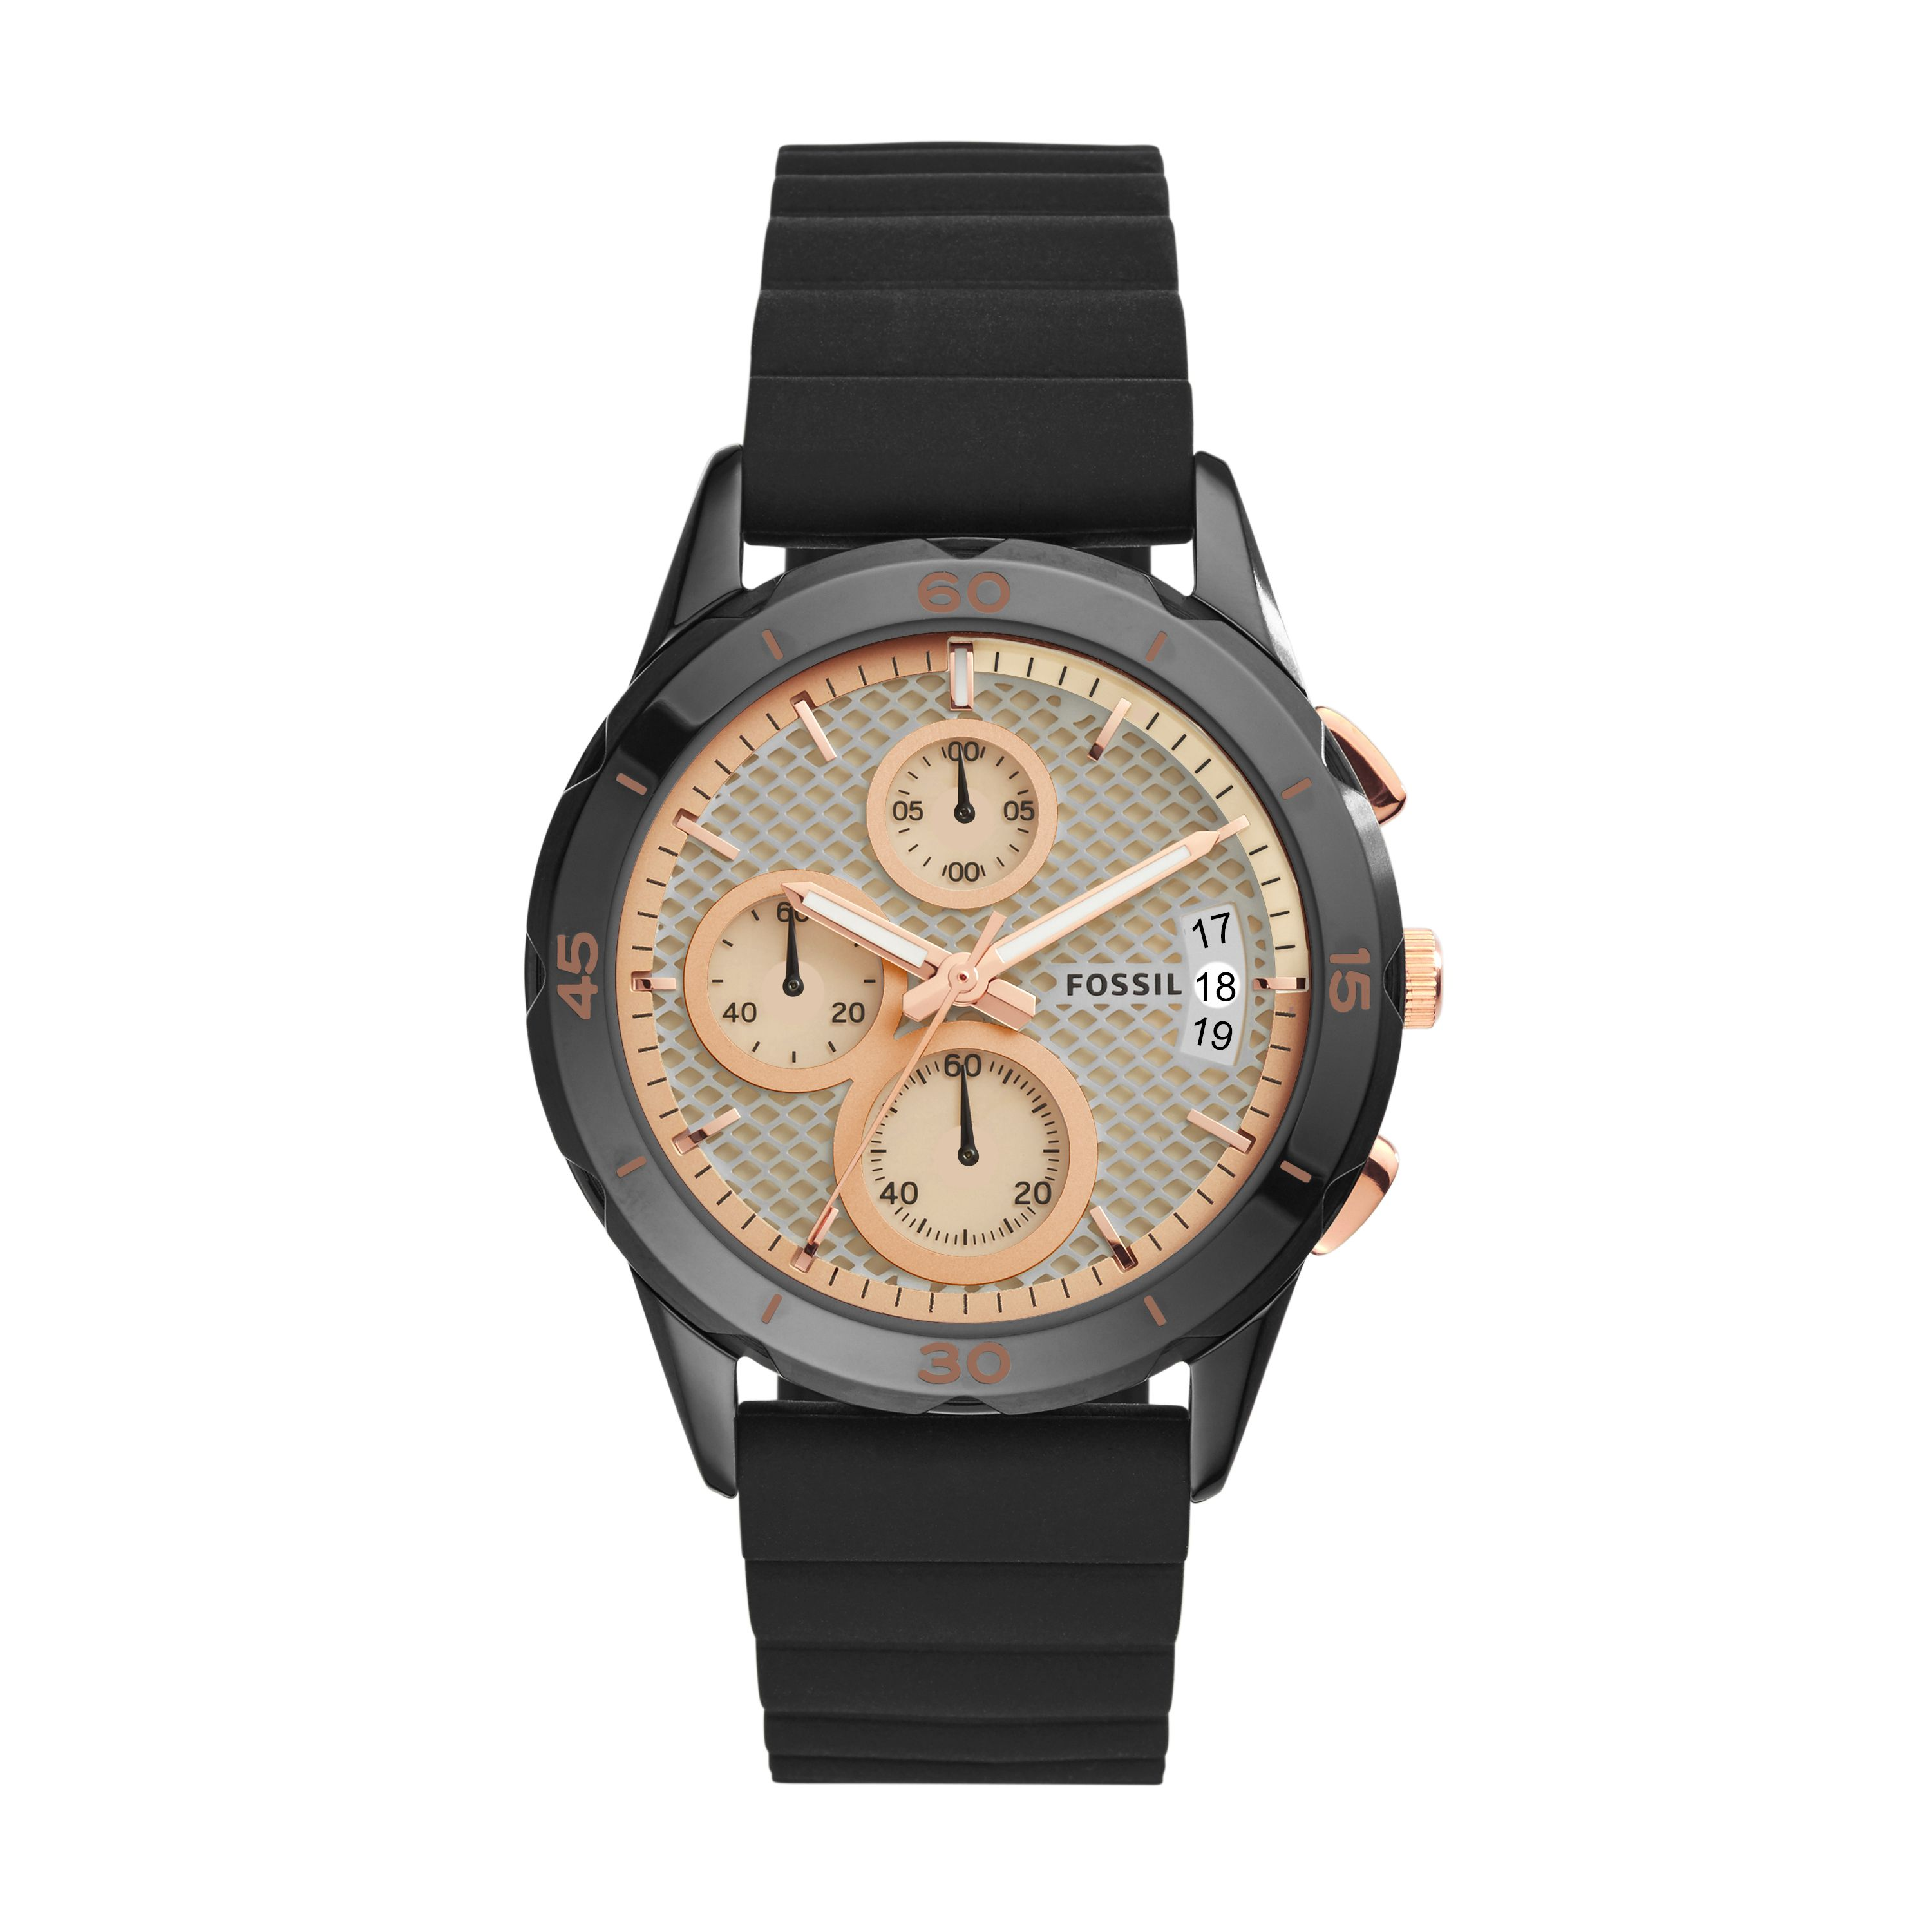 black chronograph watch. Black Bedroom Furniture Sets. Home Design Ideas